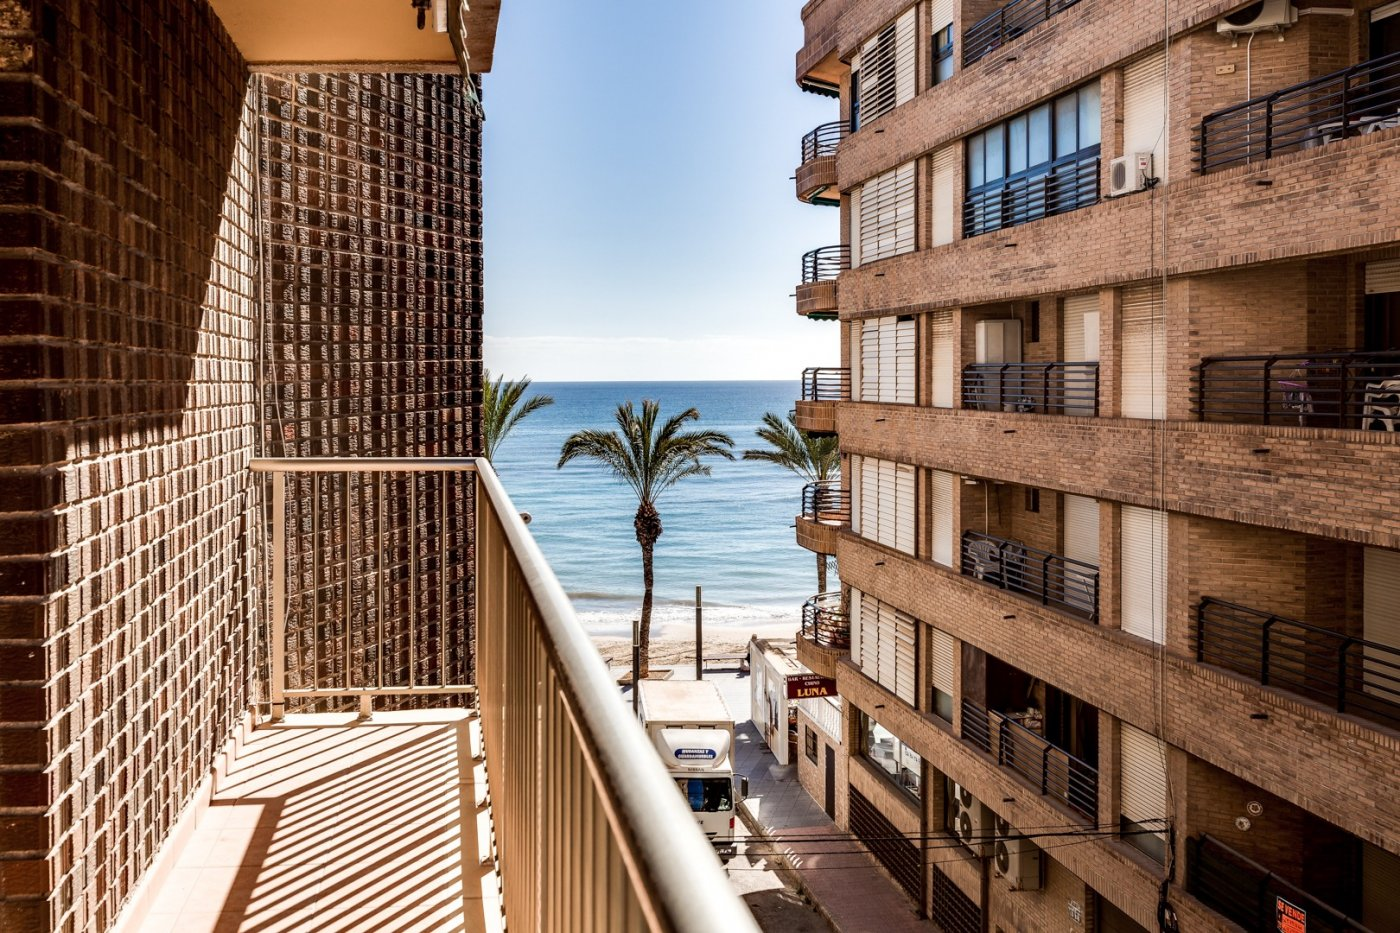 3 Bedrooms Apartment For Sale with Sea Views Near El Cura Beach